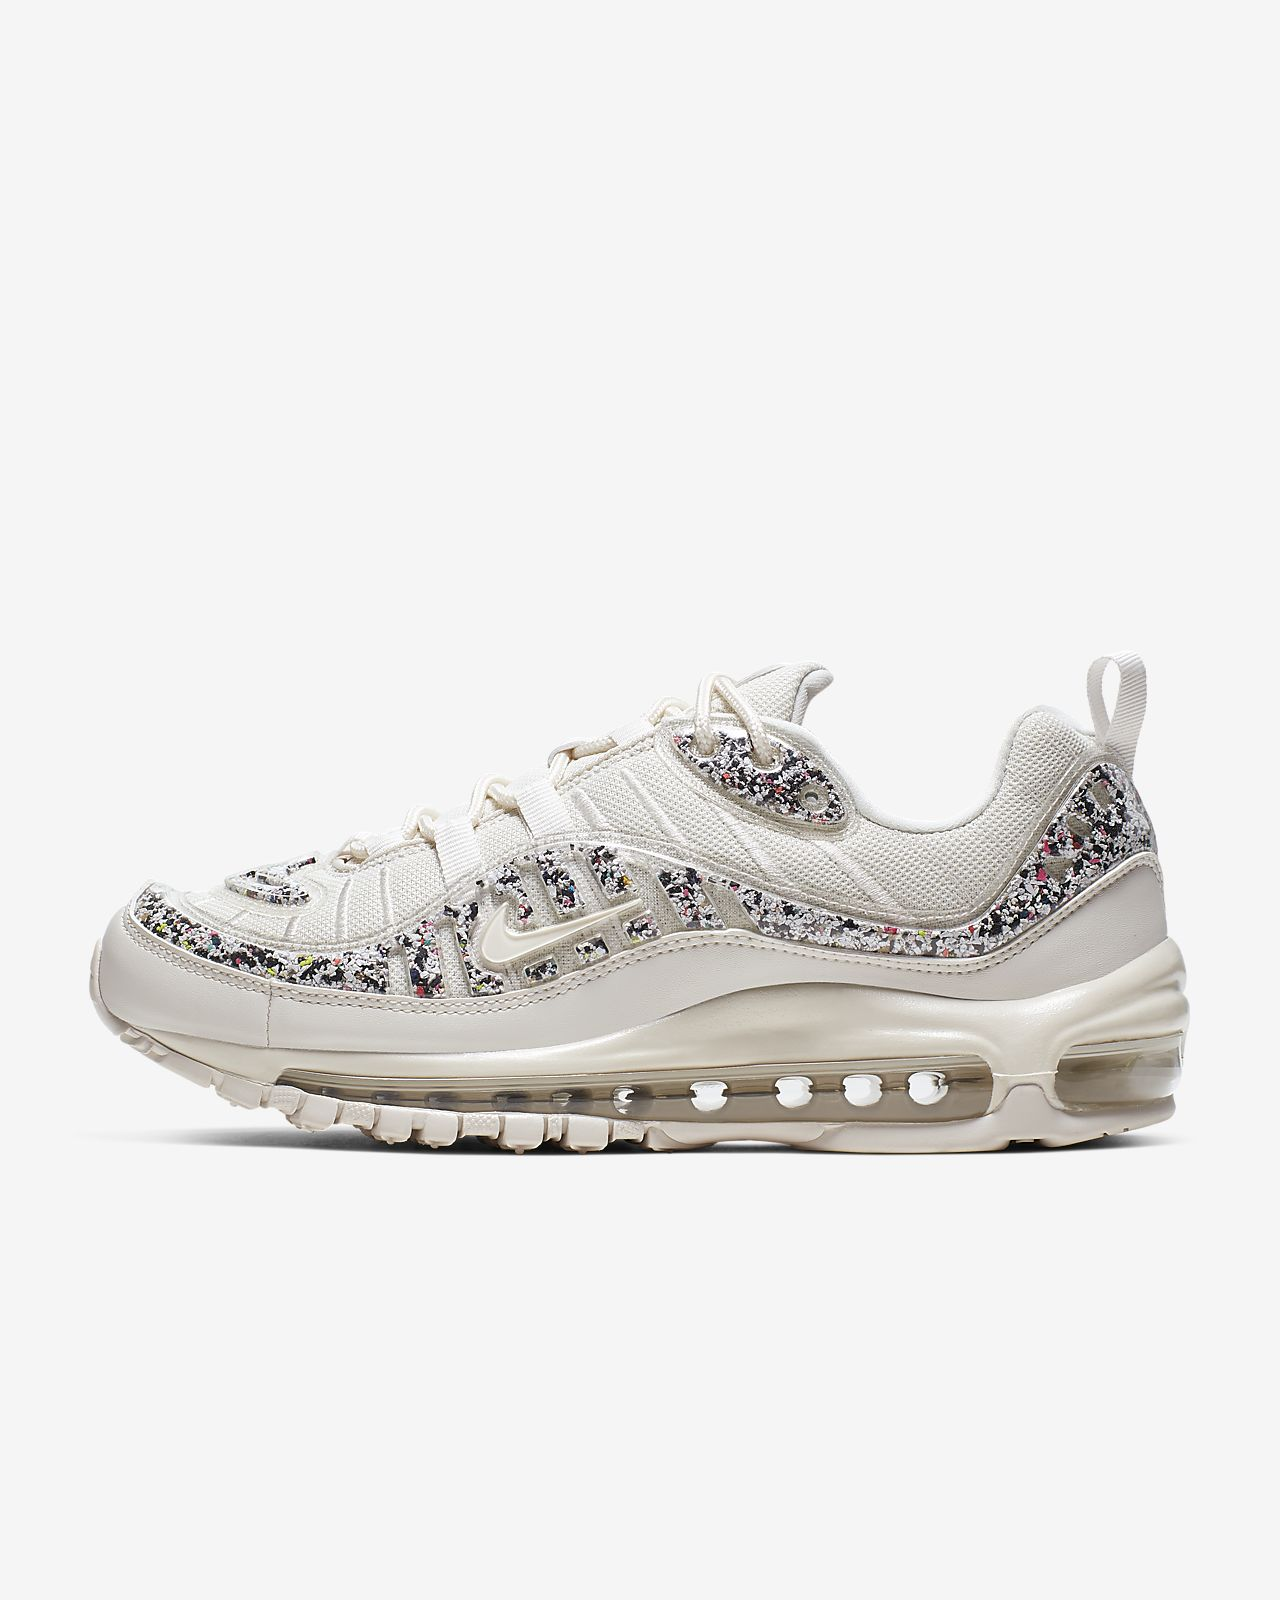 Nike Air Max 98 LX Damesschoen